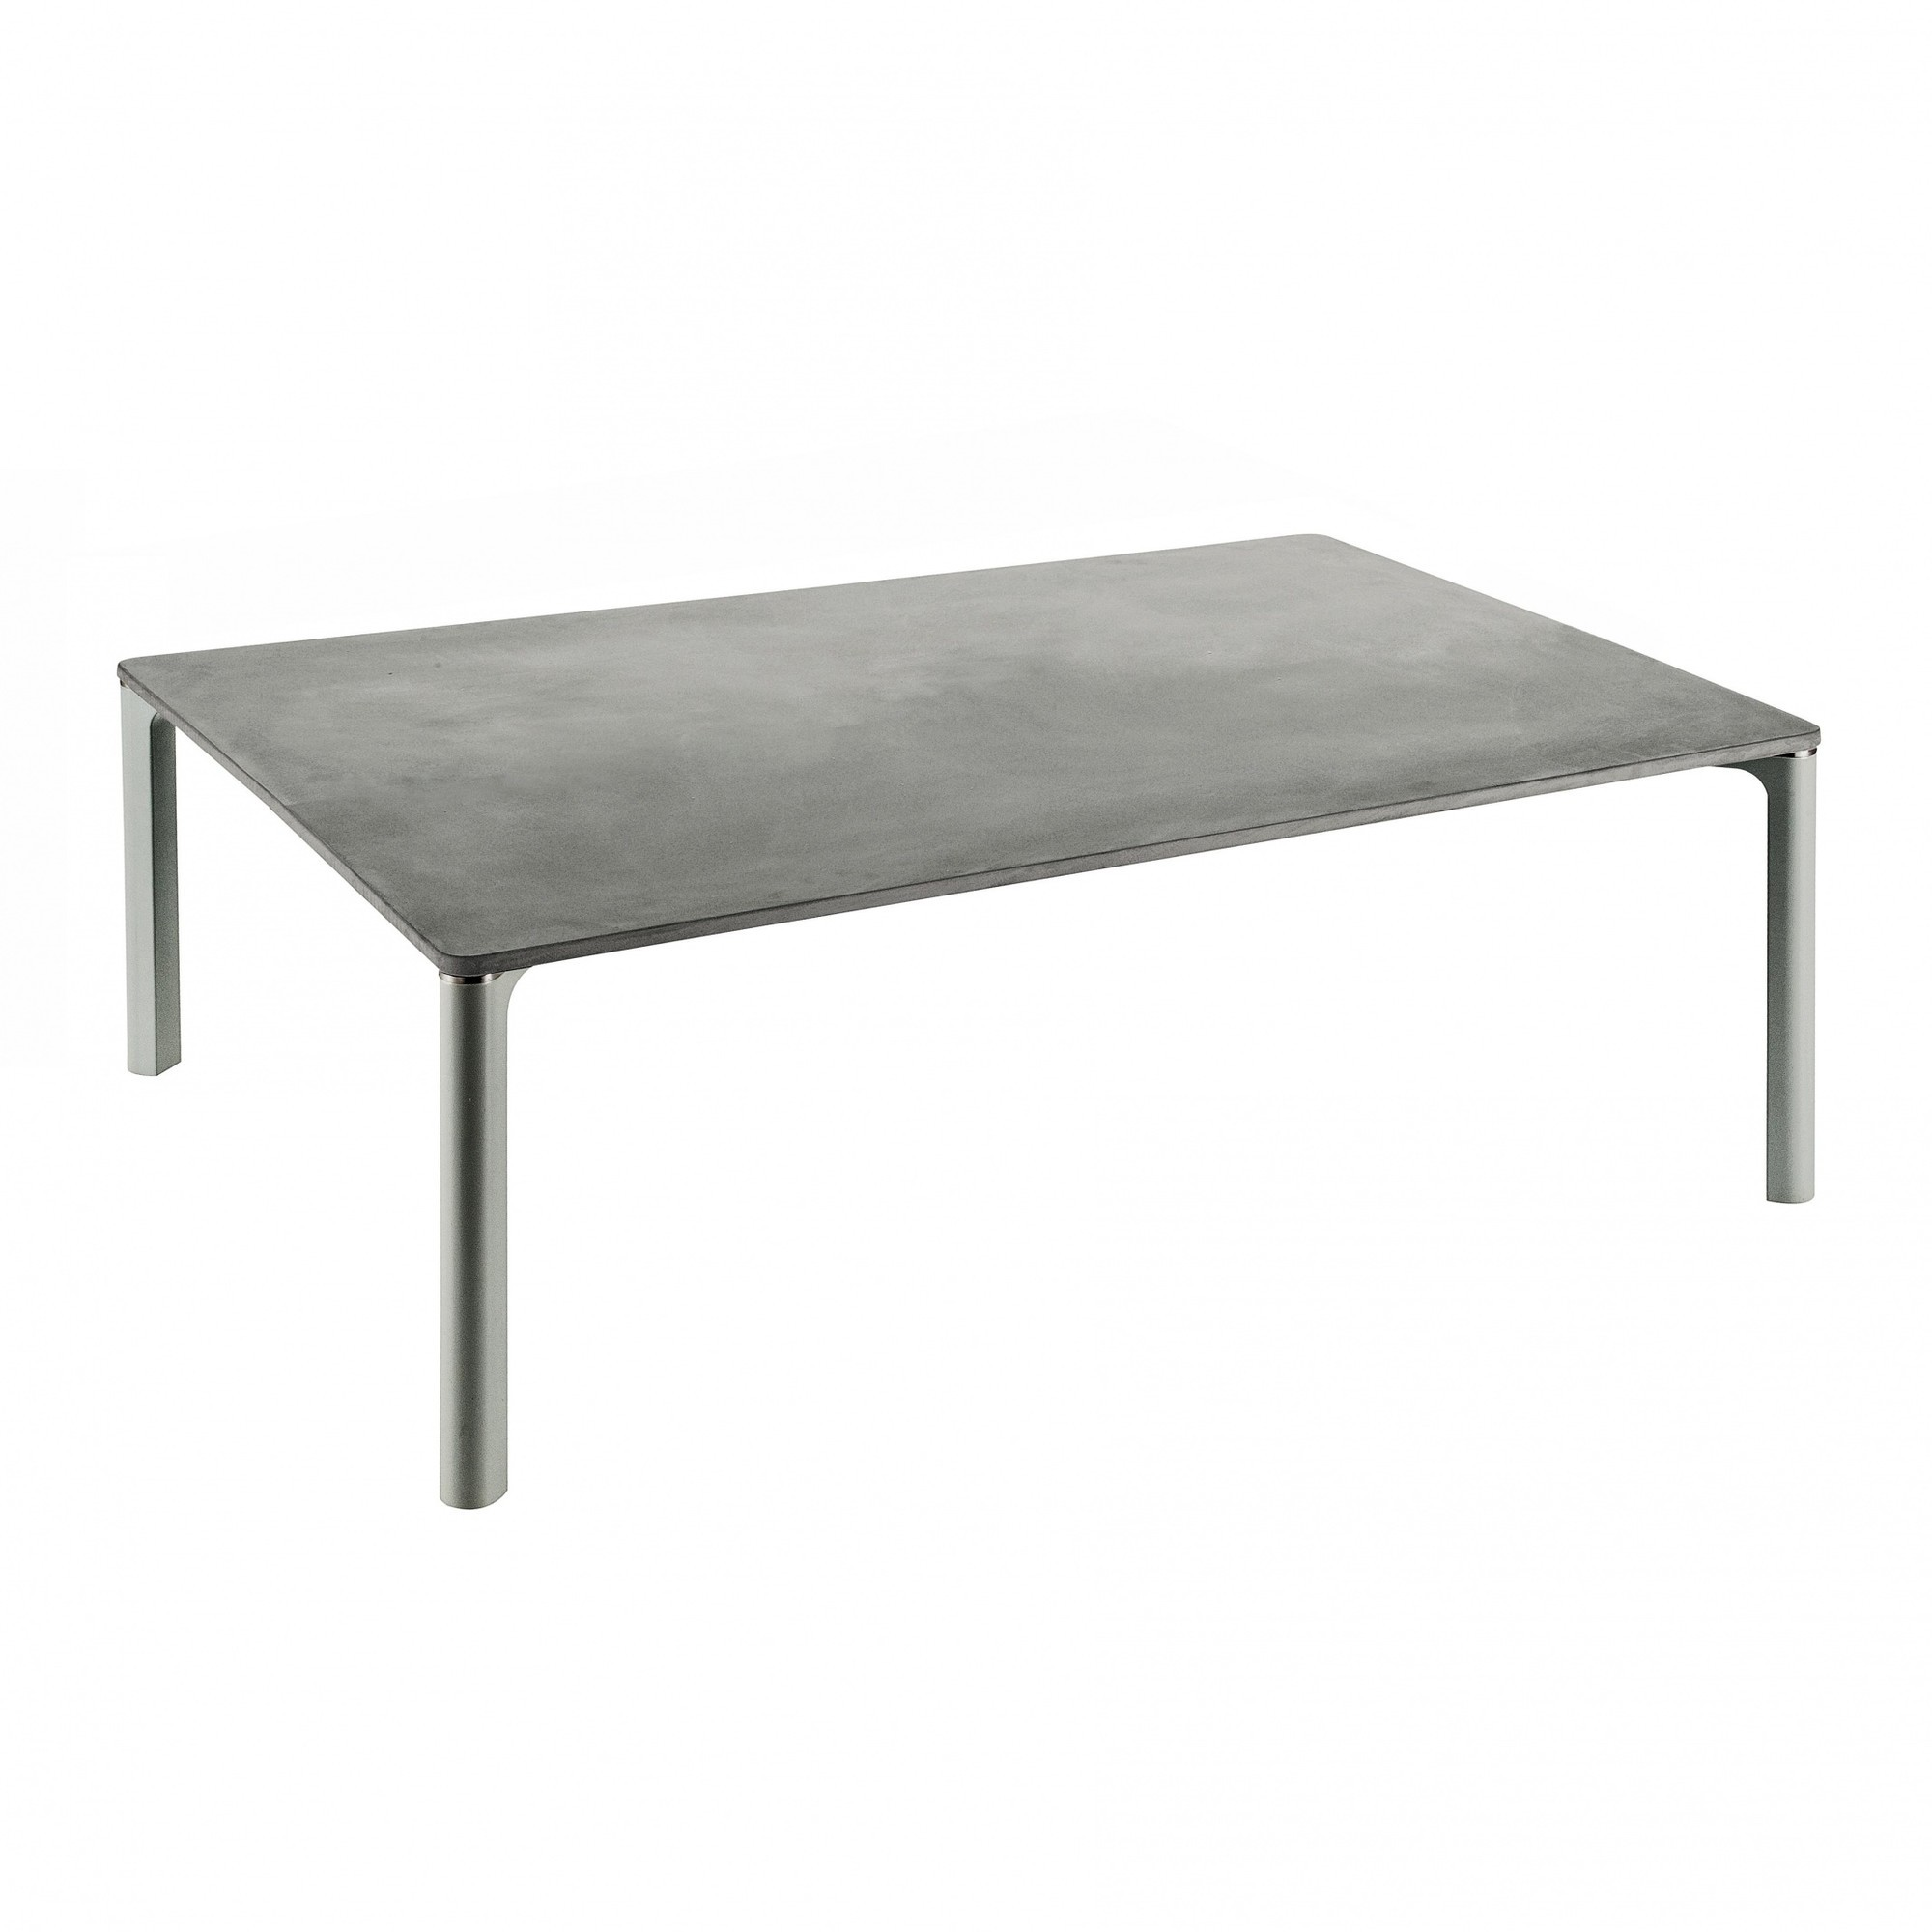 Bettsofa Livique Tables De Salon Table Carr E Avec Pieds En M Tal Brut Tables En